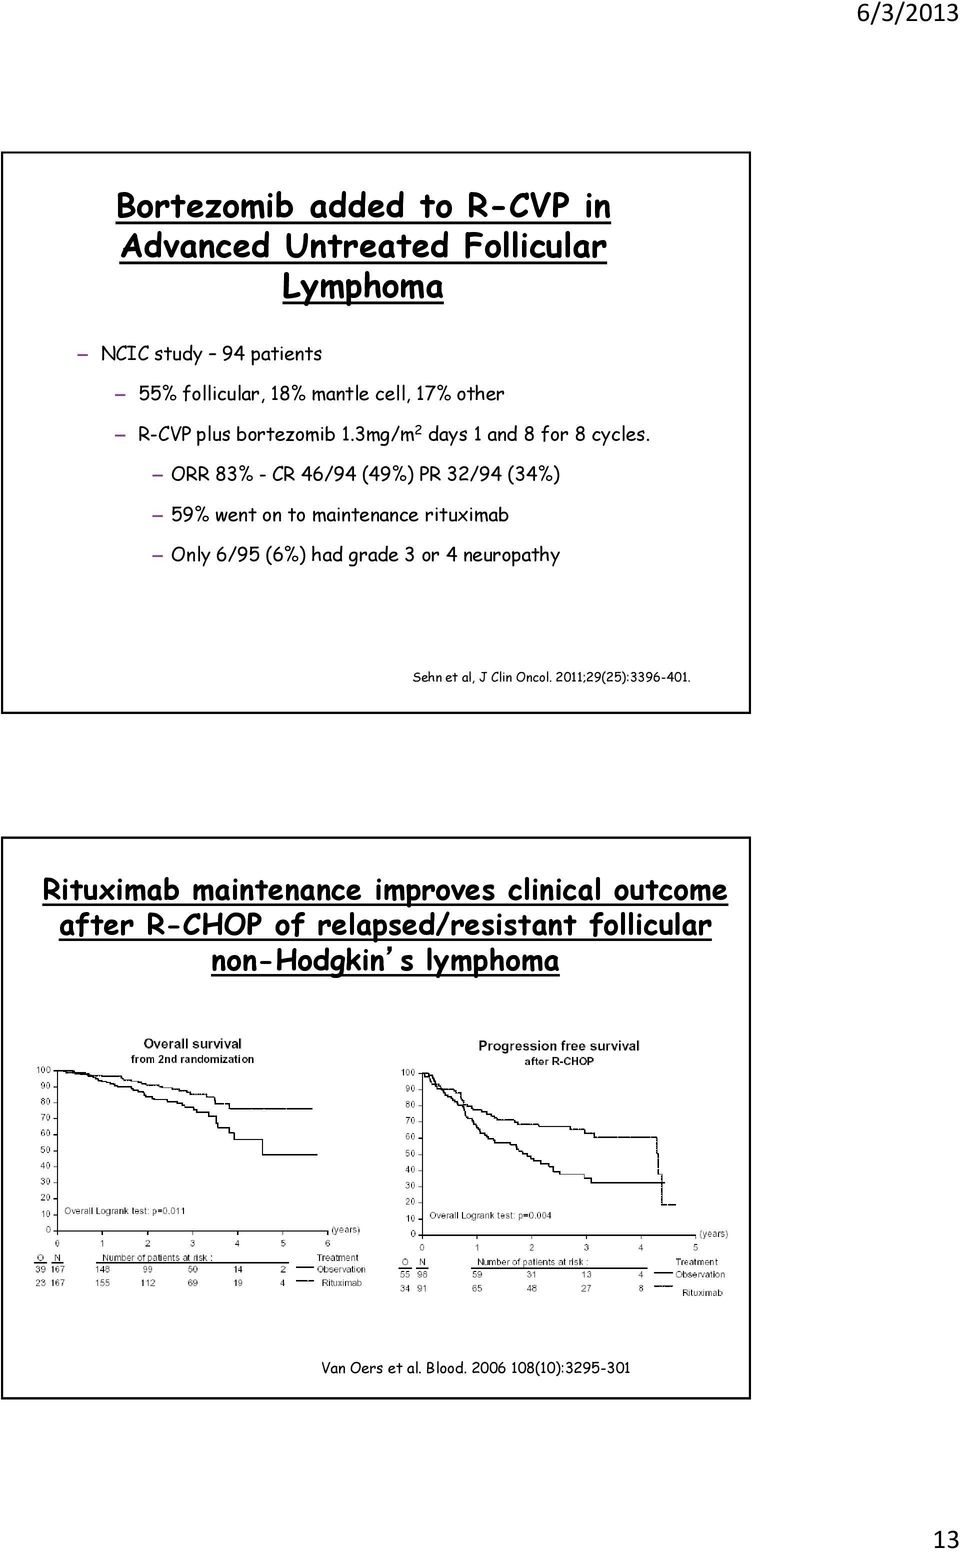 ORR 83% - CR 46/94 (49%) PR 32/94 (34%) 59% went on to maintenance rituximab Only 6/95 (6%) had grade 3 or 4 neuropathy Sehn et al,